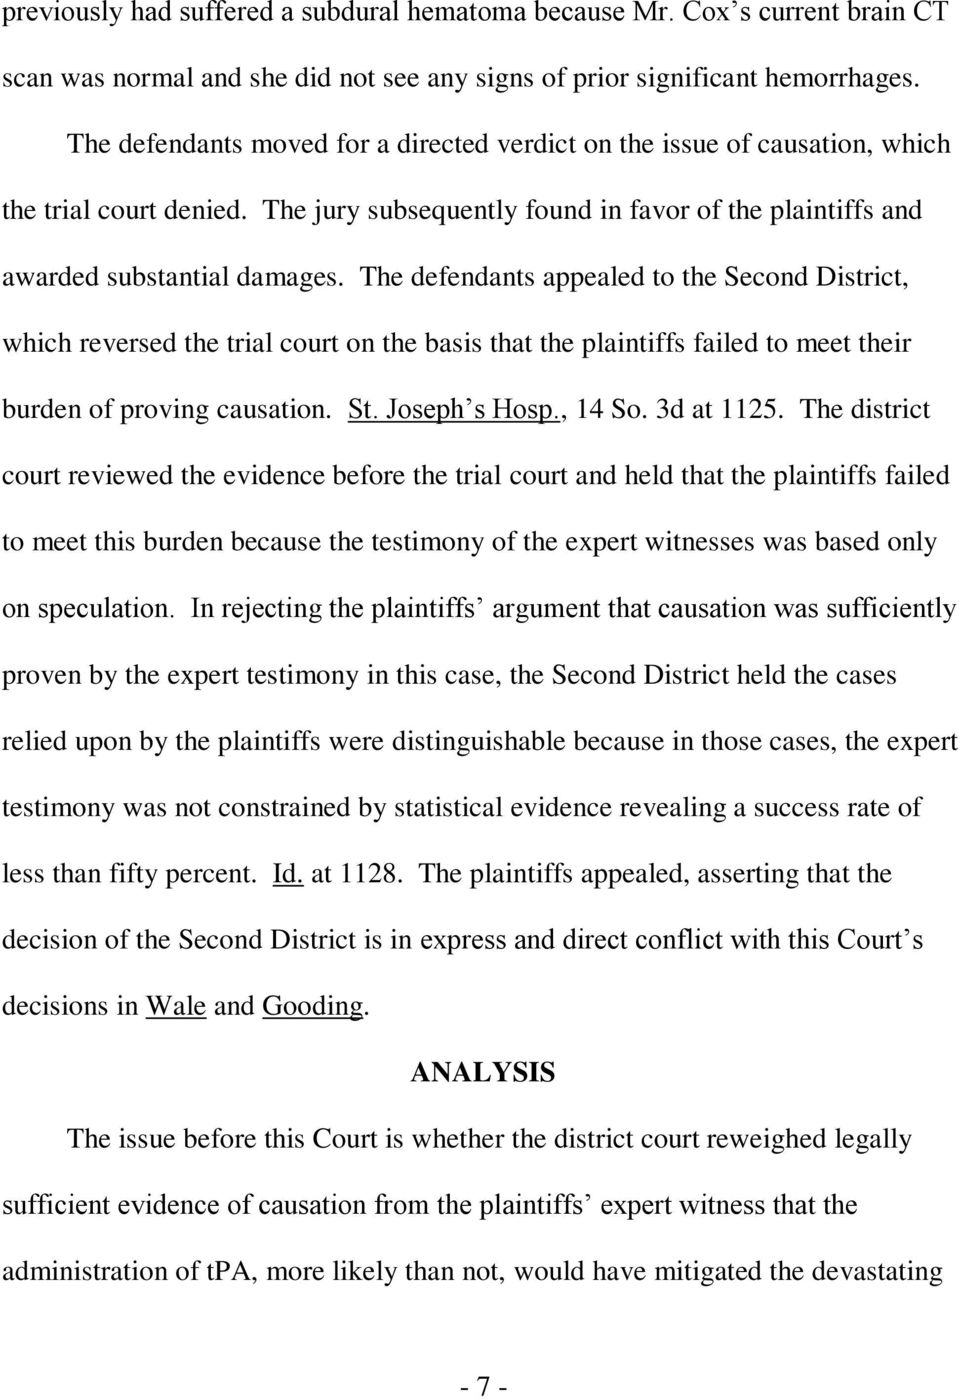 The defendants appealed to the Second District, which reversed the trial court on the basis that the plaintiffs failed to meet their burden of proving causation. St. Joseph s Hosp., 14 So. 3d at 1125.